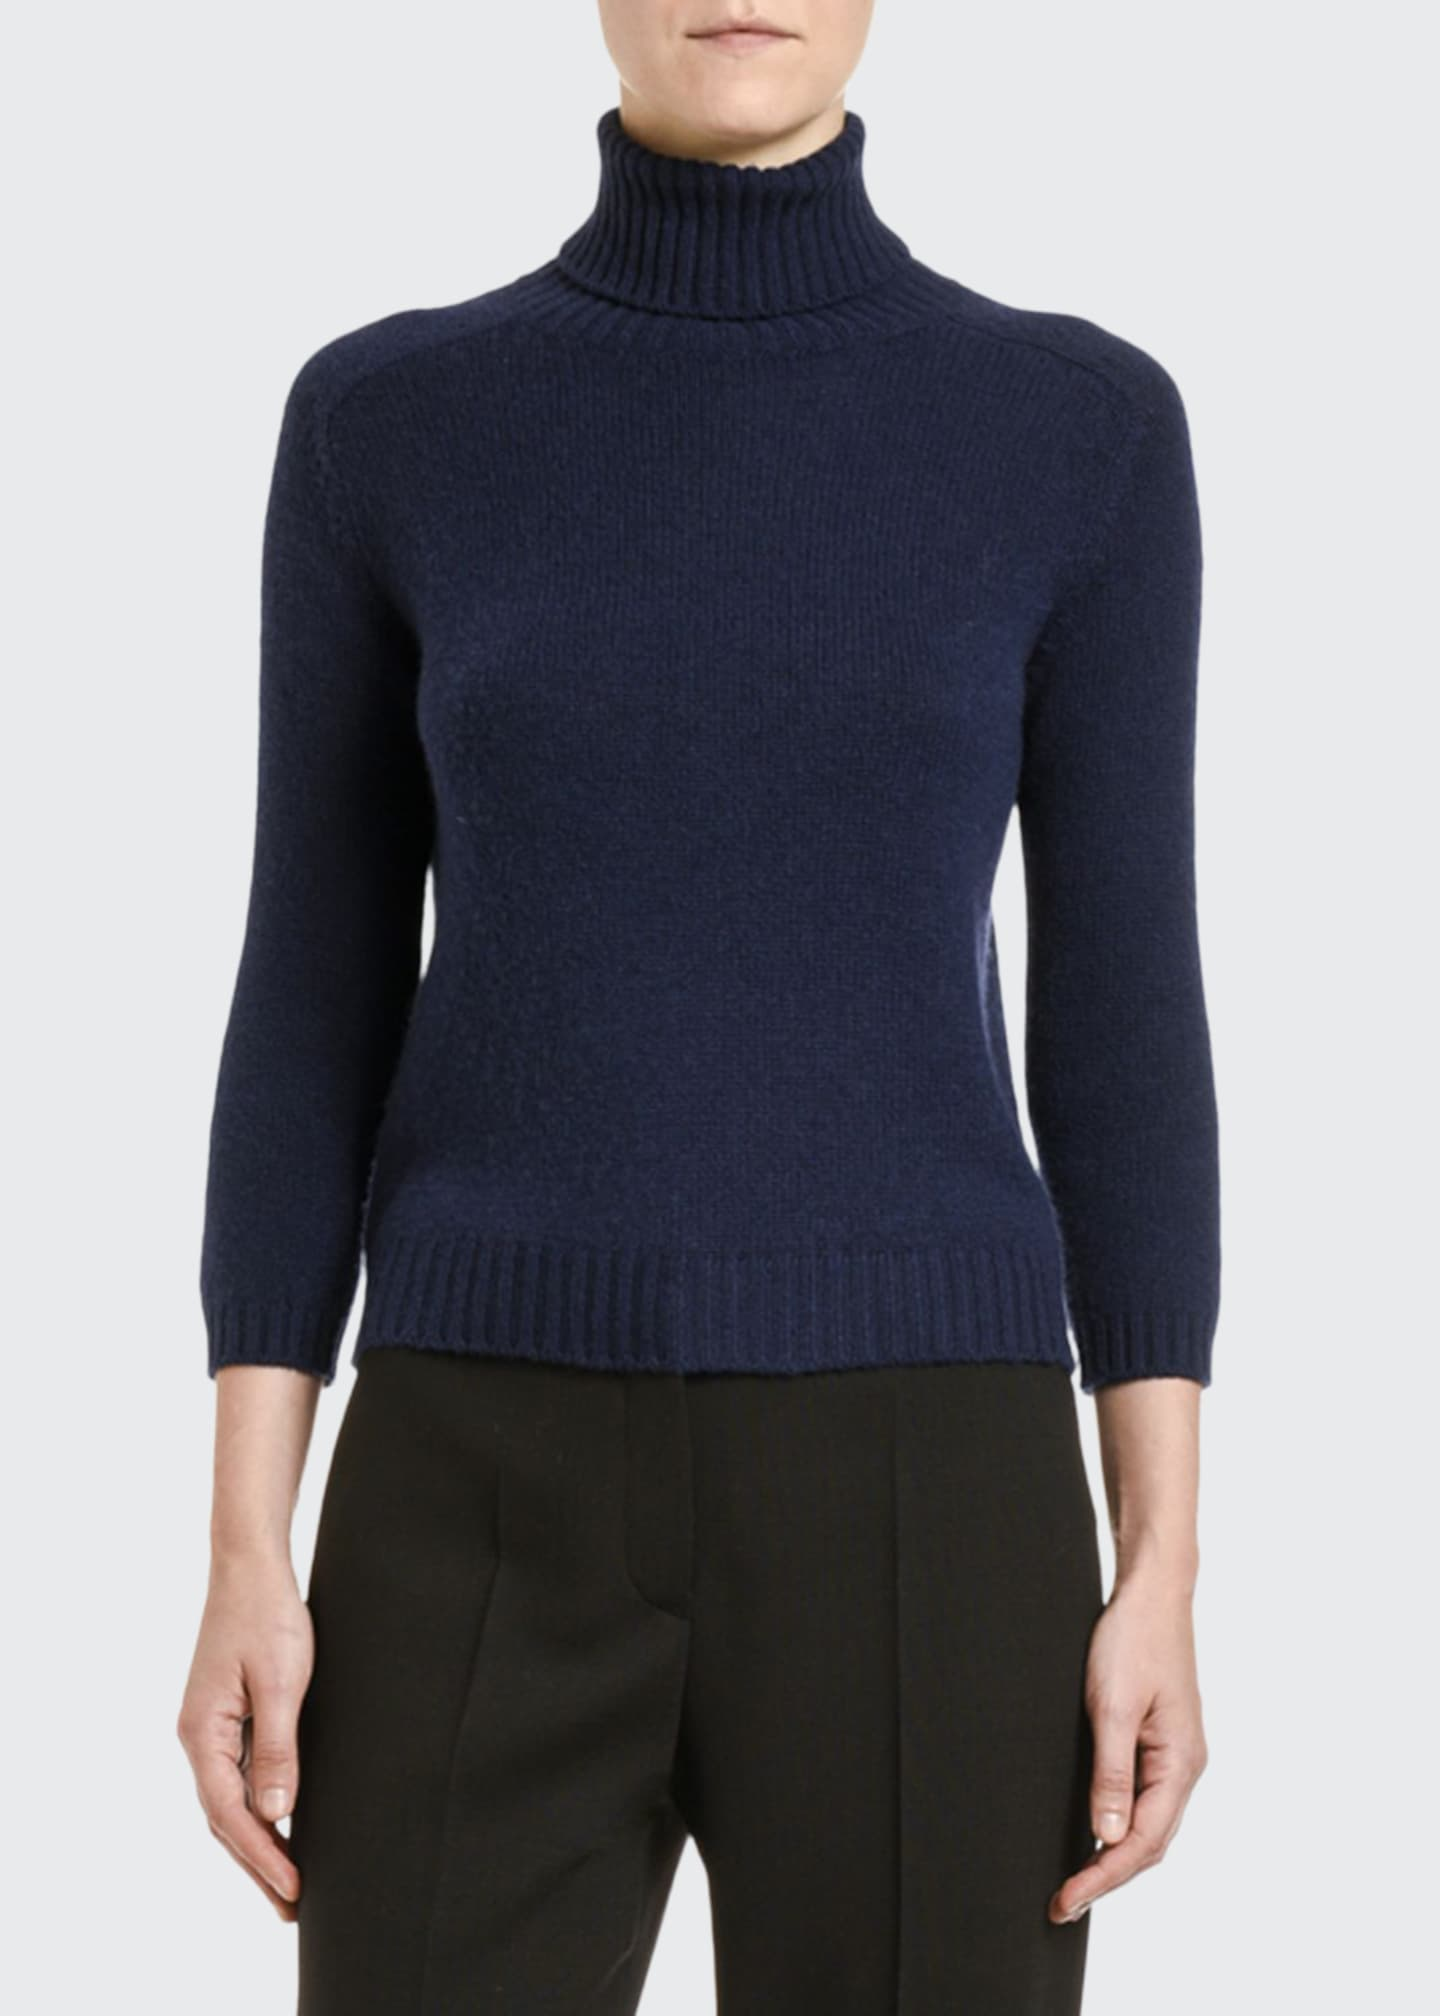 Prada Cashmere Elbow-Patched 3/4-Sleeve Sweater